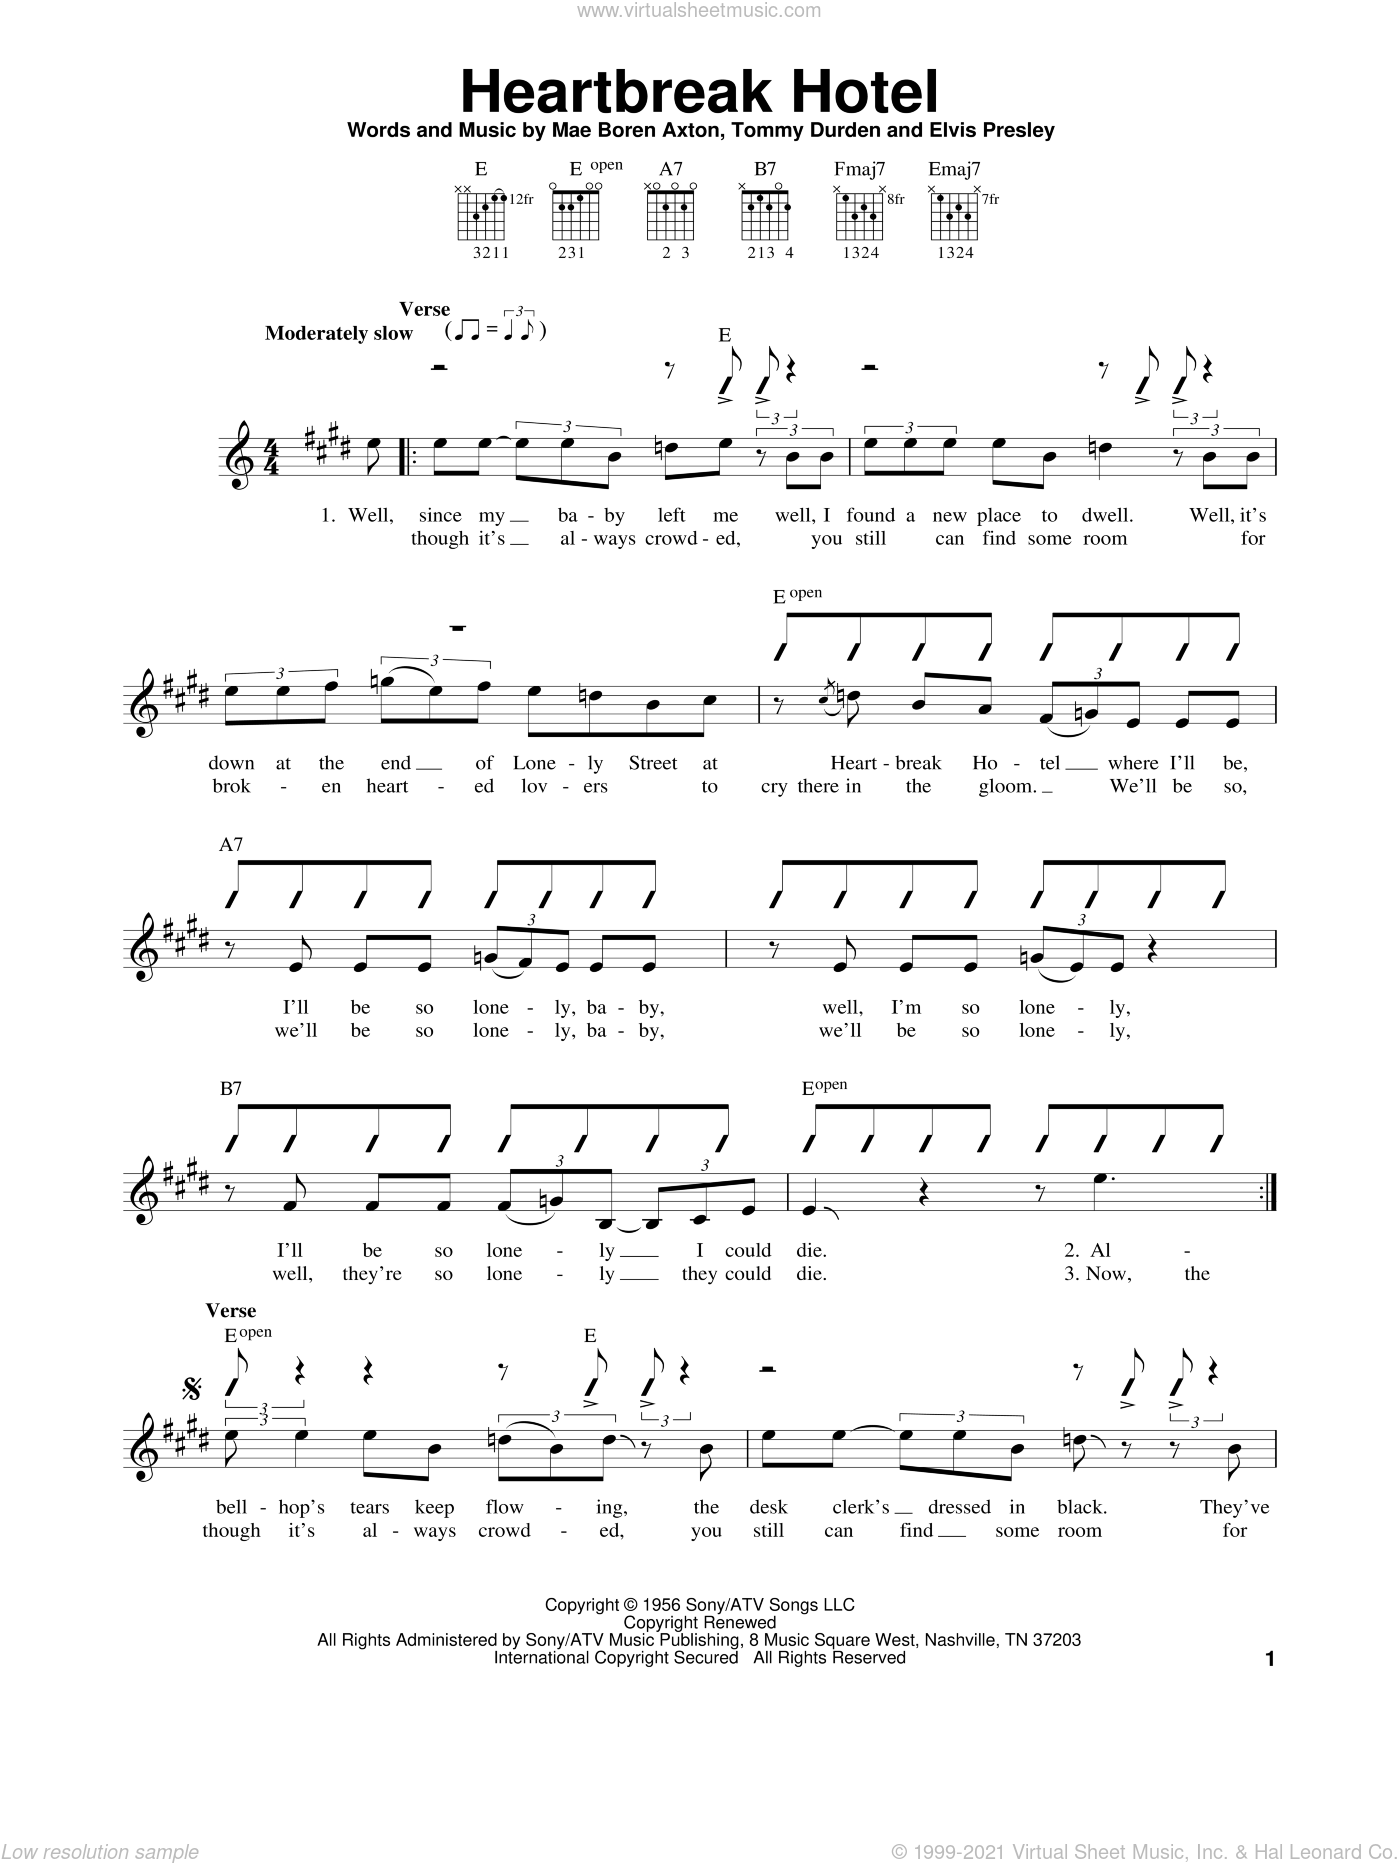 Heartbreak Hotel sheet music for guitar solo (chords) by Tommy Durden